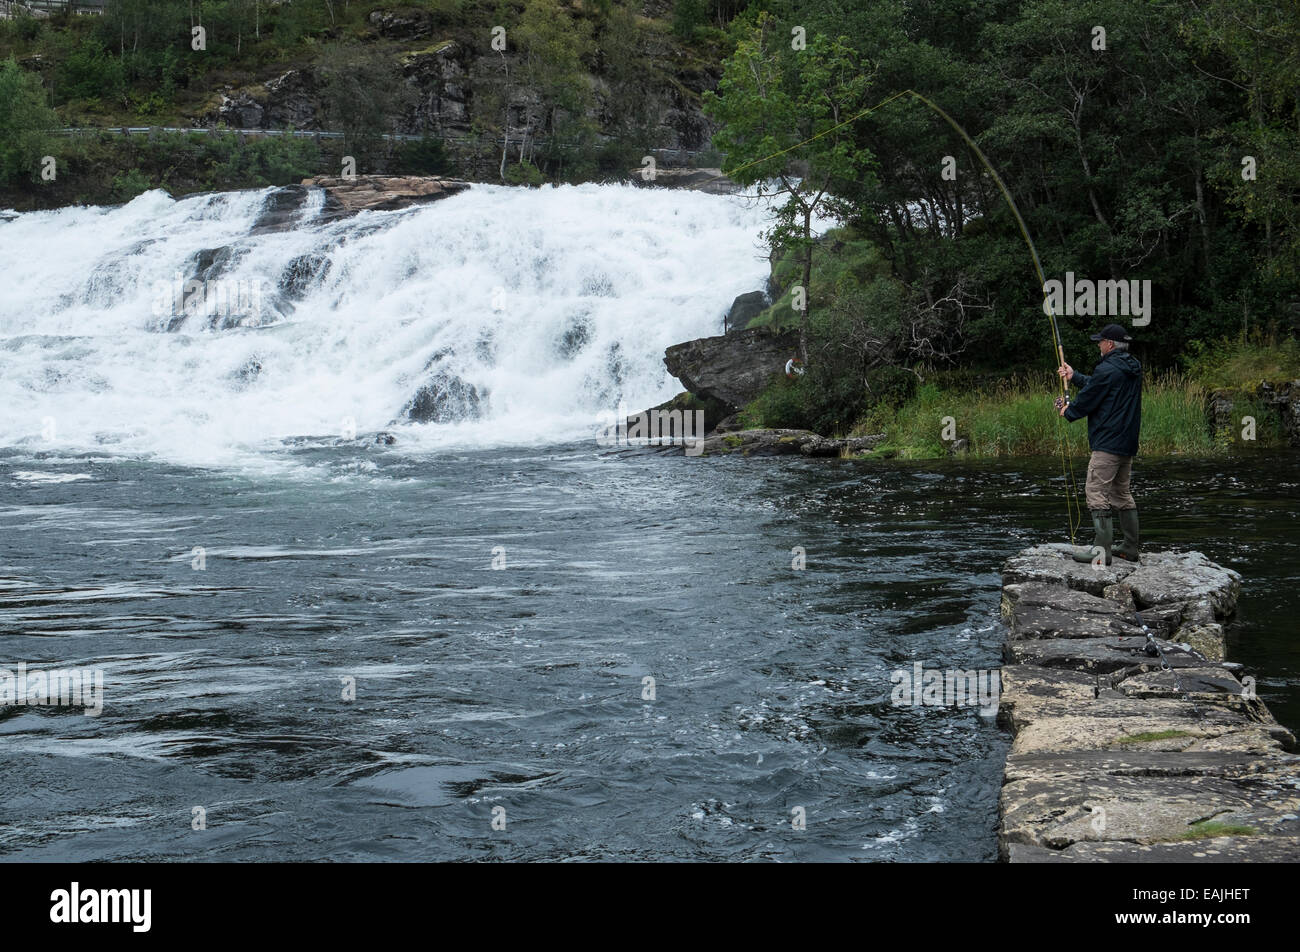 Salmon fly fisher in river Gaula, Norway - Stock Image